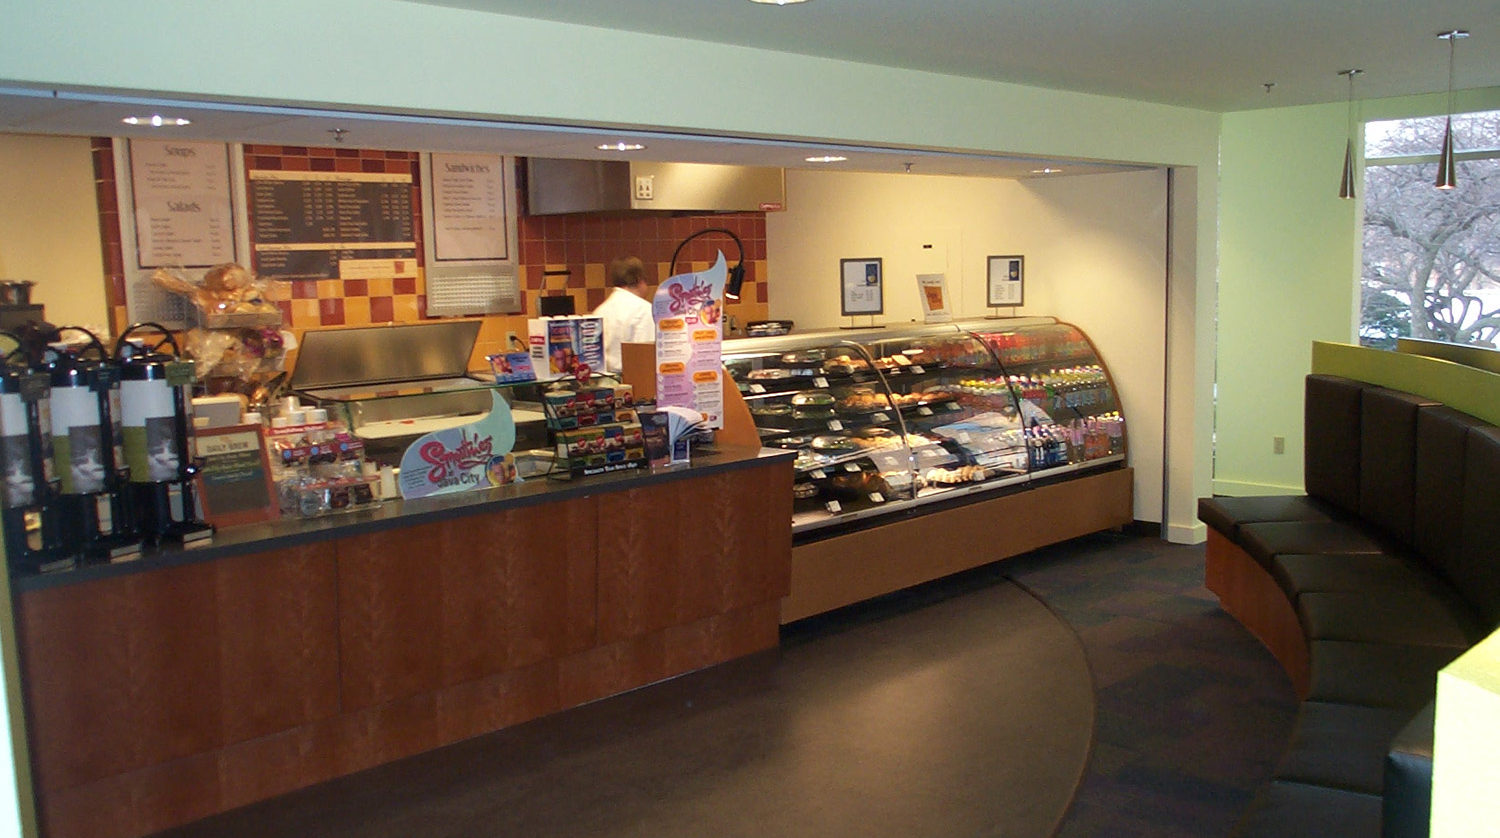 North Park University_ Viking Cafe counter 2